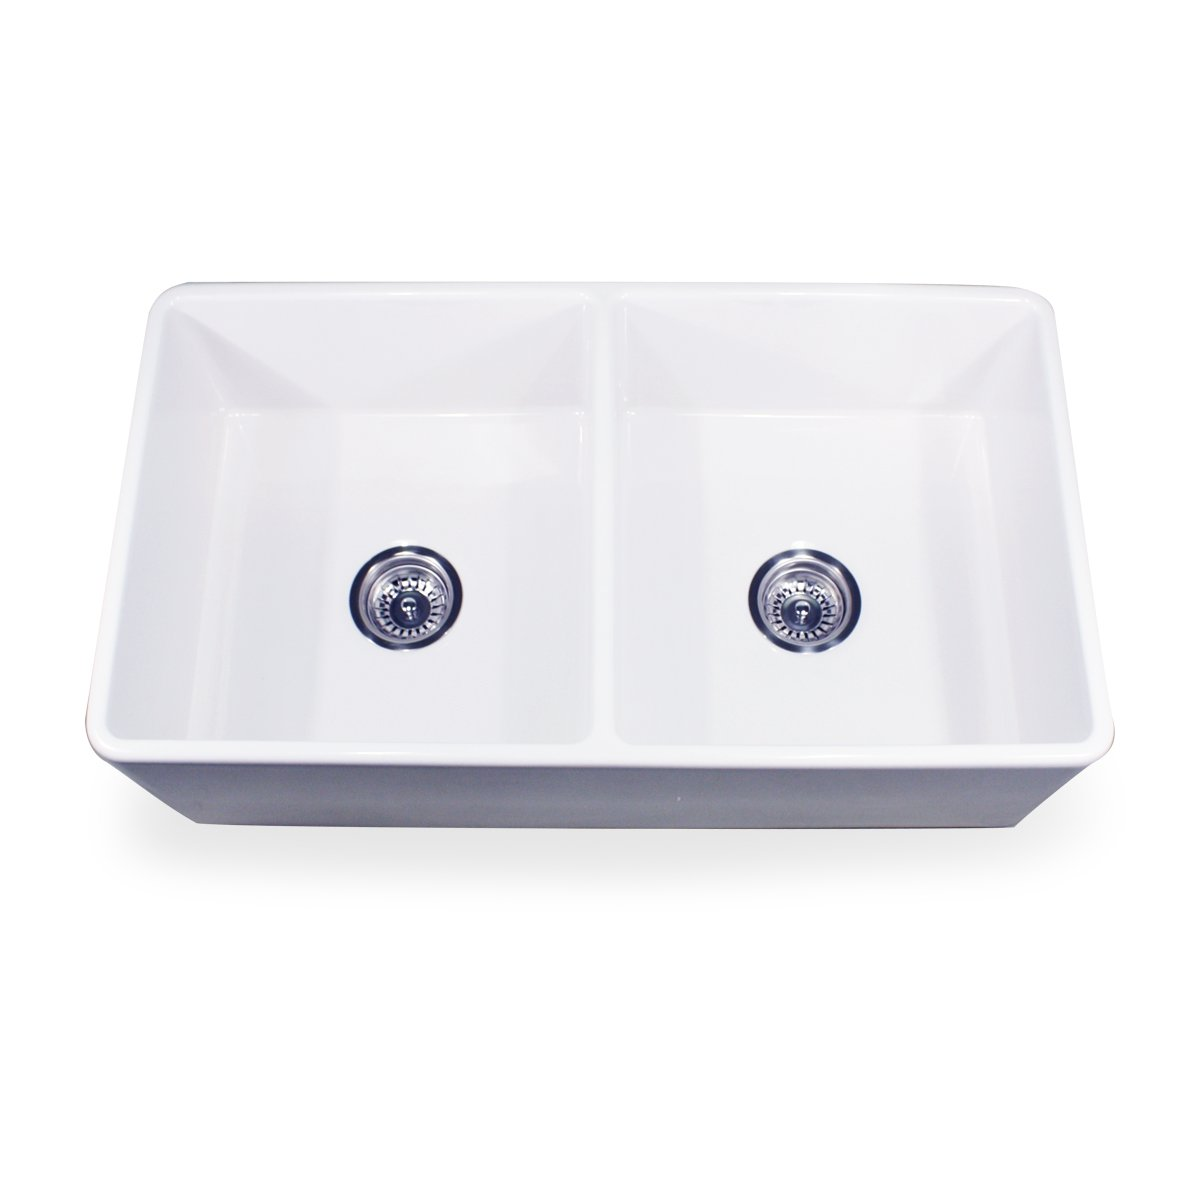 Farmhouse Sink 33 Inch White : ... -33-DBL 33-Inch Double Equal Fireclay Farmhouse Kitchen Sink, White